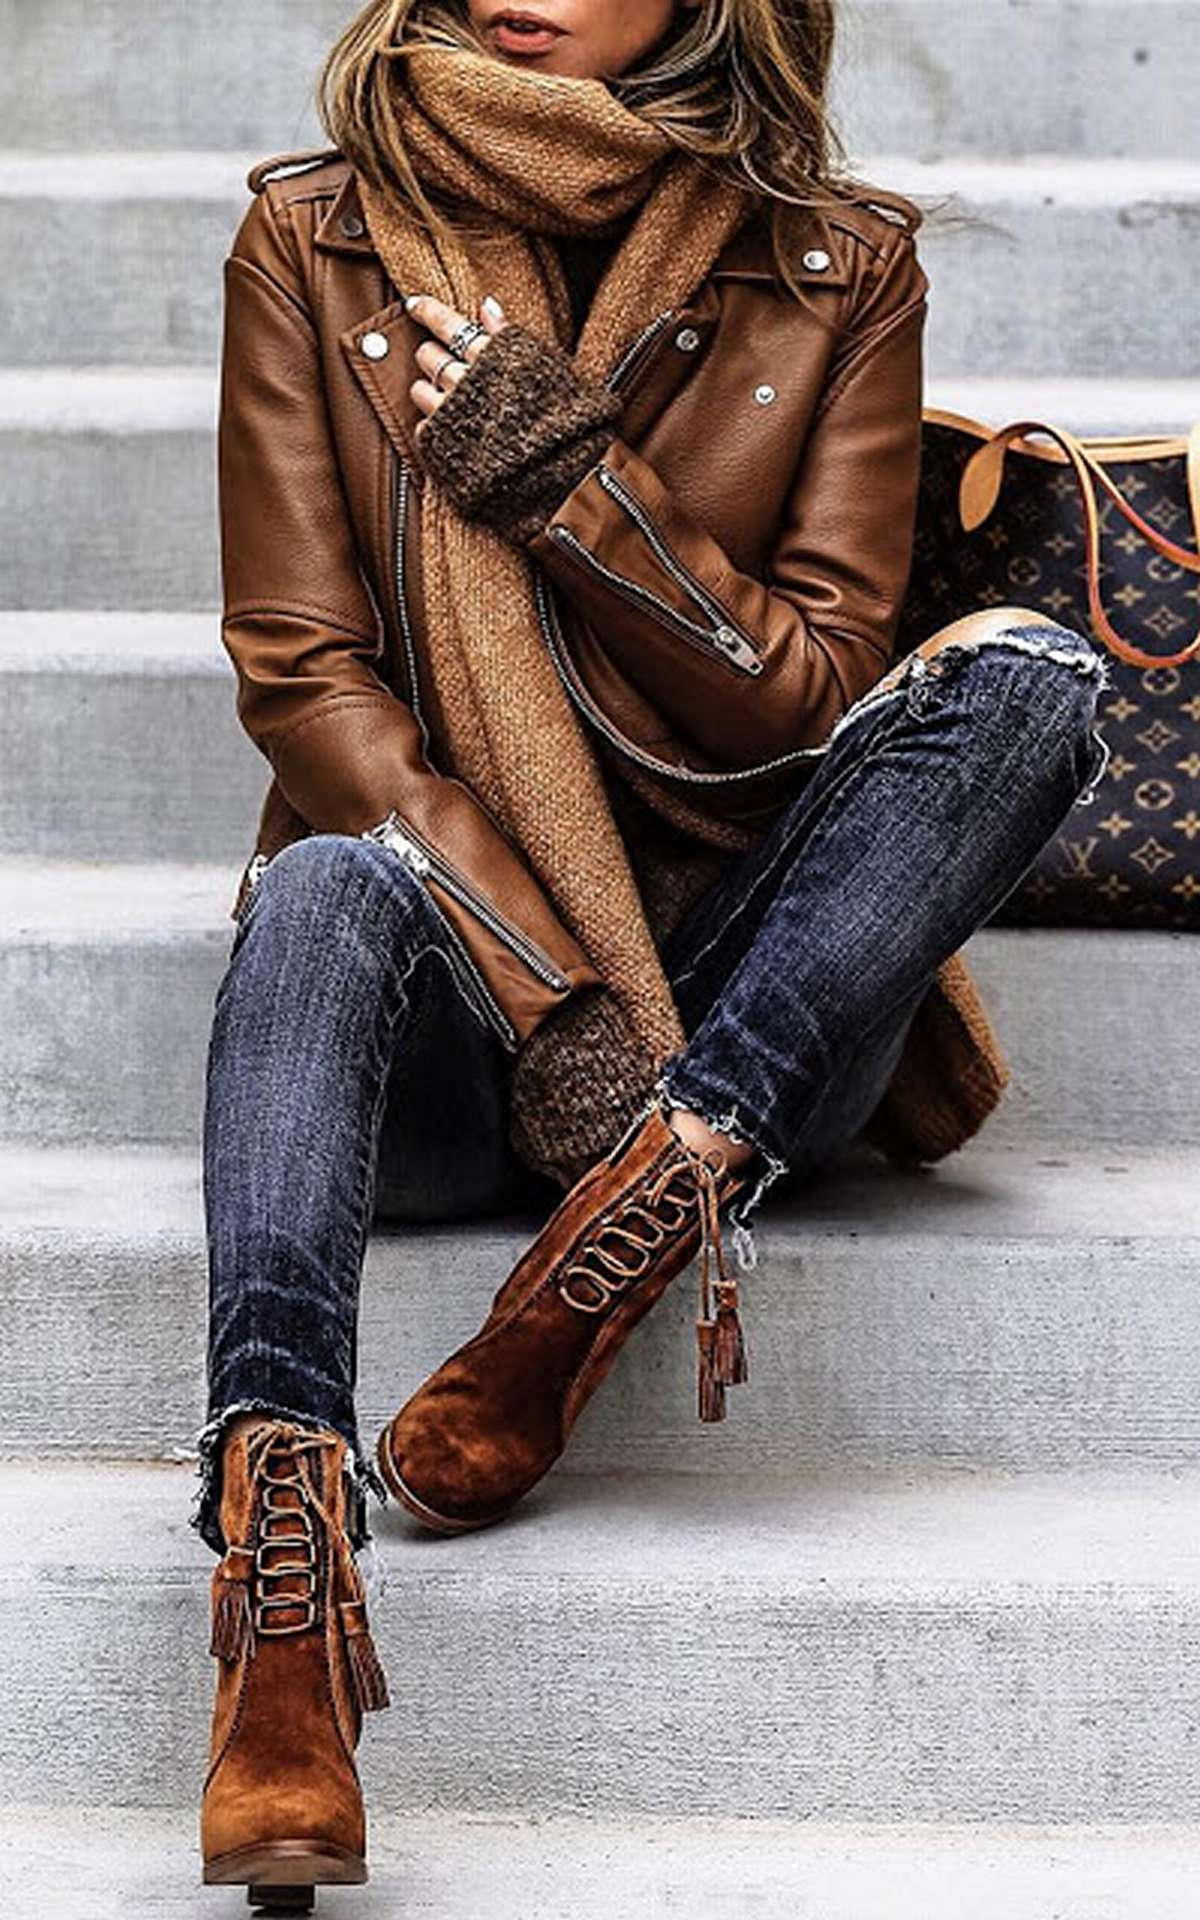 Badass Leather Clothes For Women 009 Fashion Dressfitme